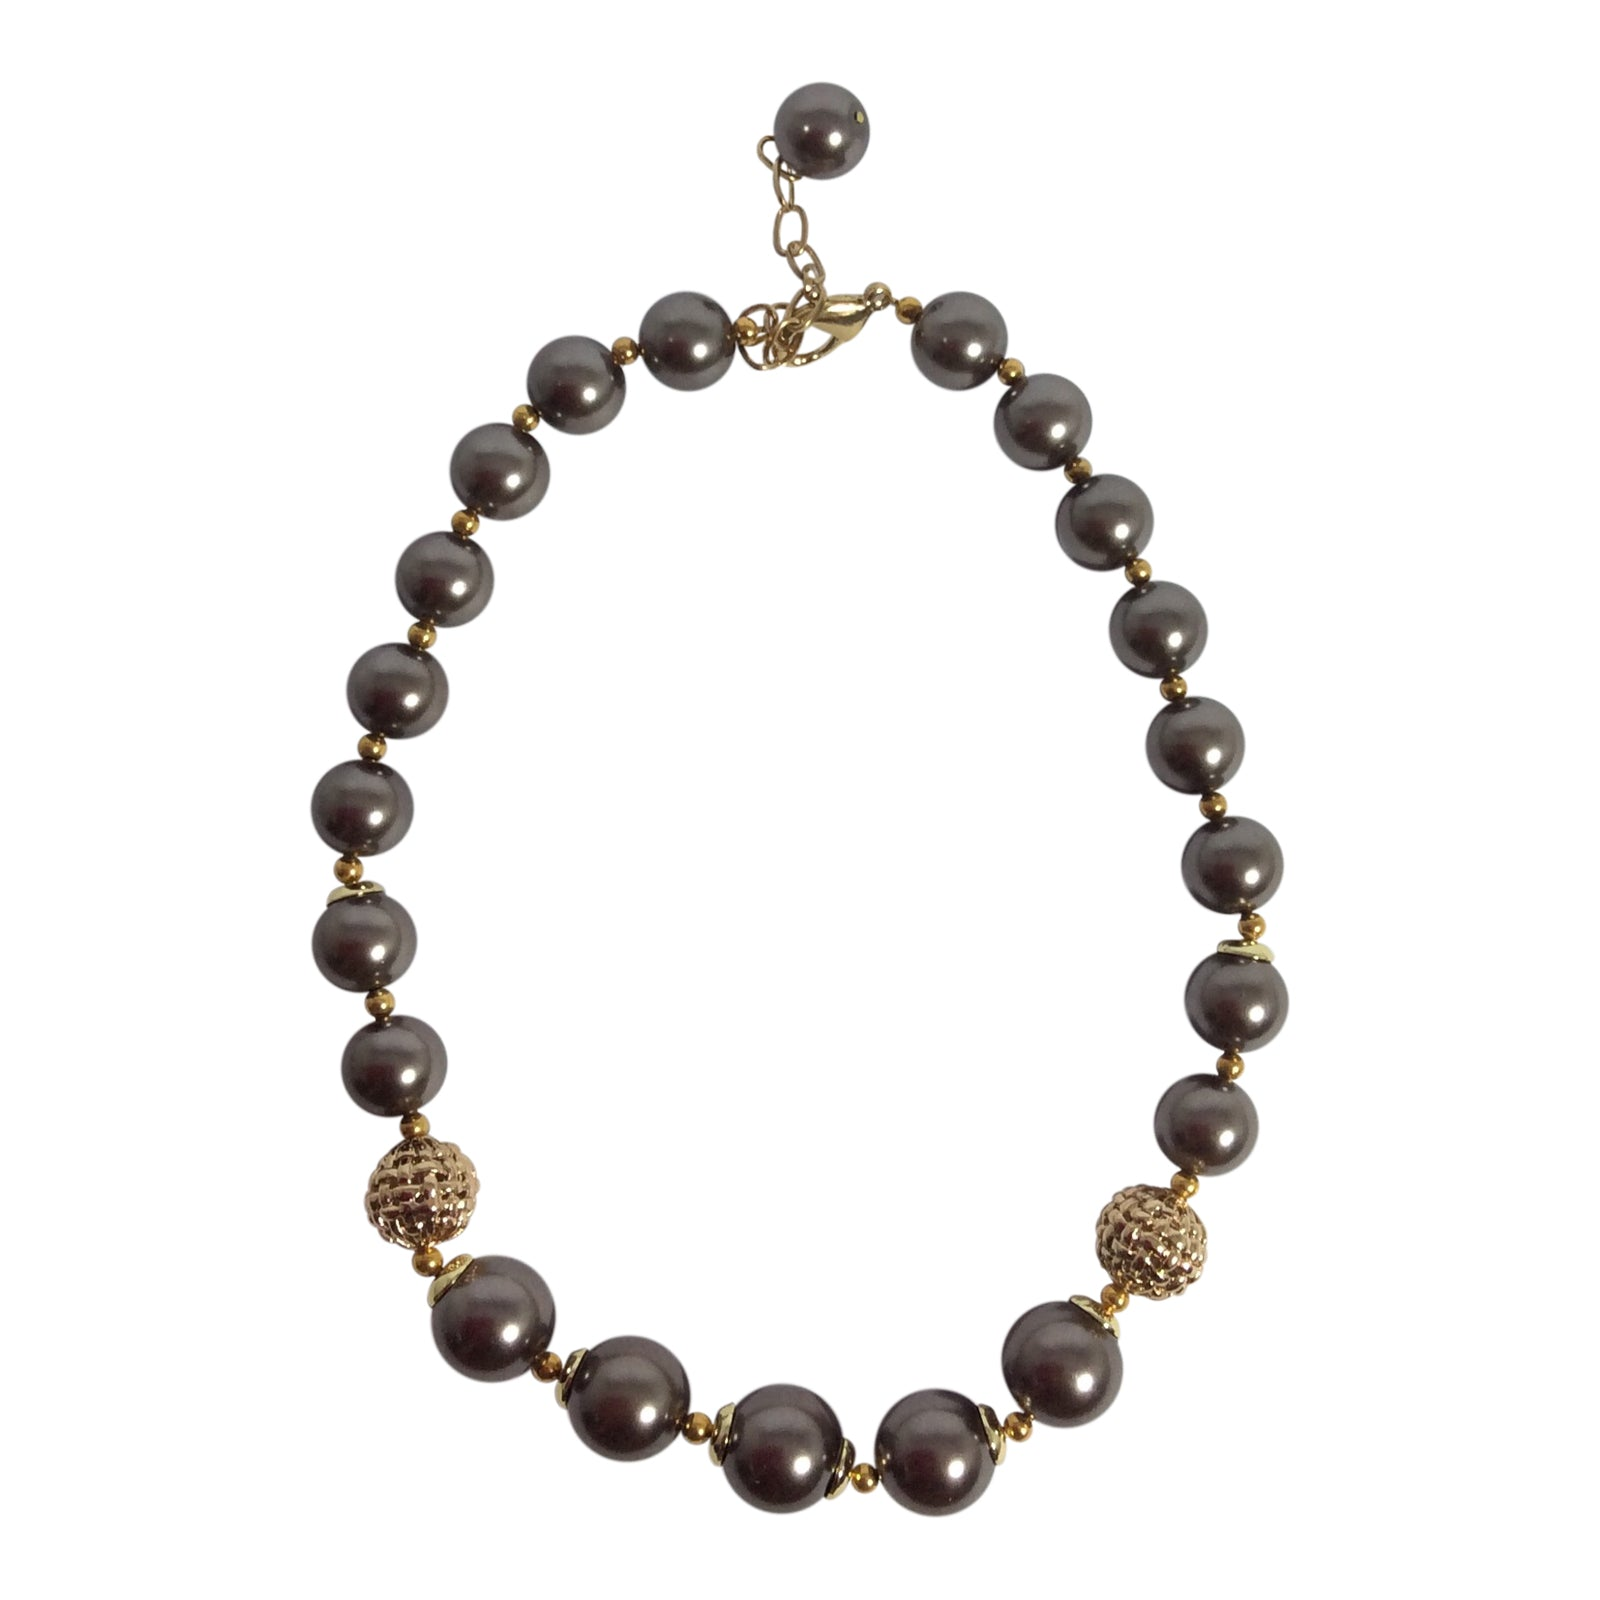 Sally - Smokey Pearl Necklace